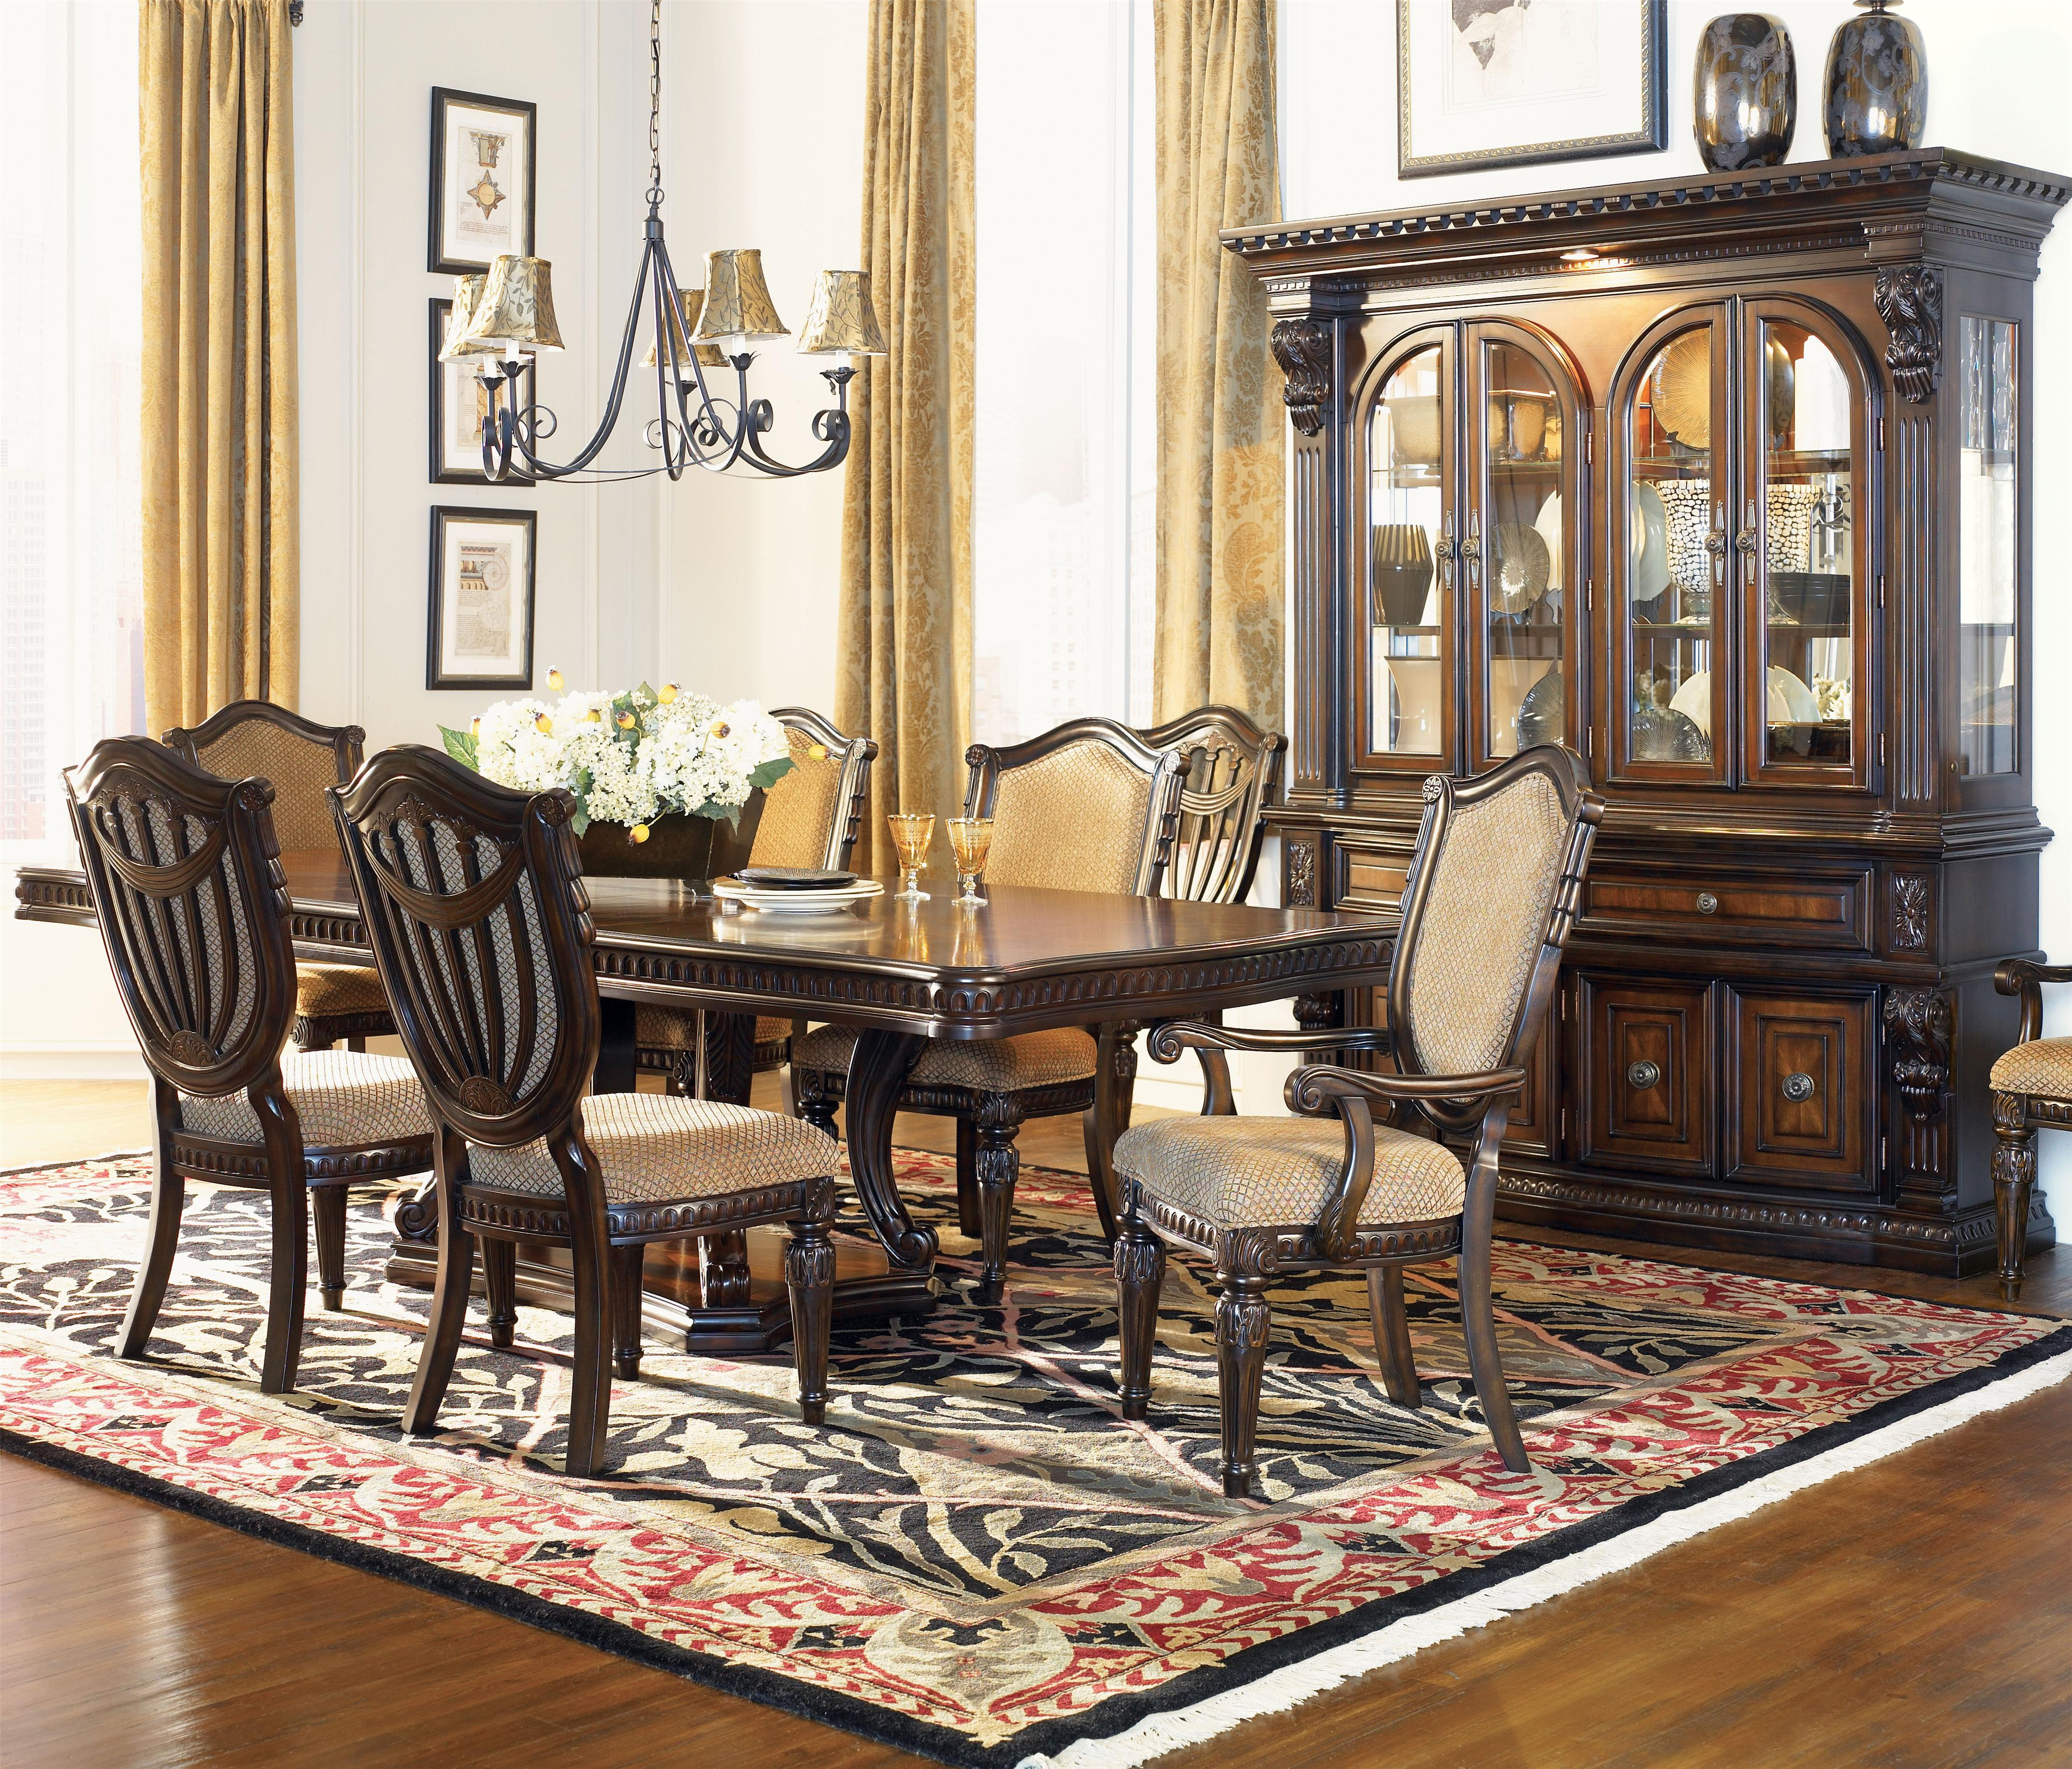 king furniture dining chairs tall table and fairmont designs grand estates formal room group royal